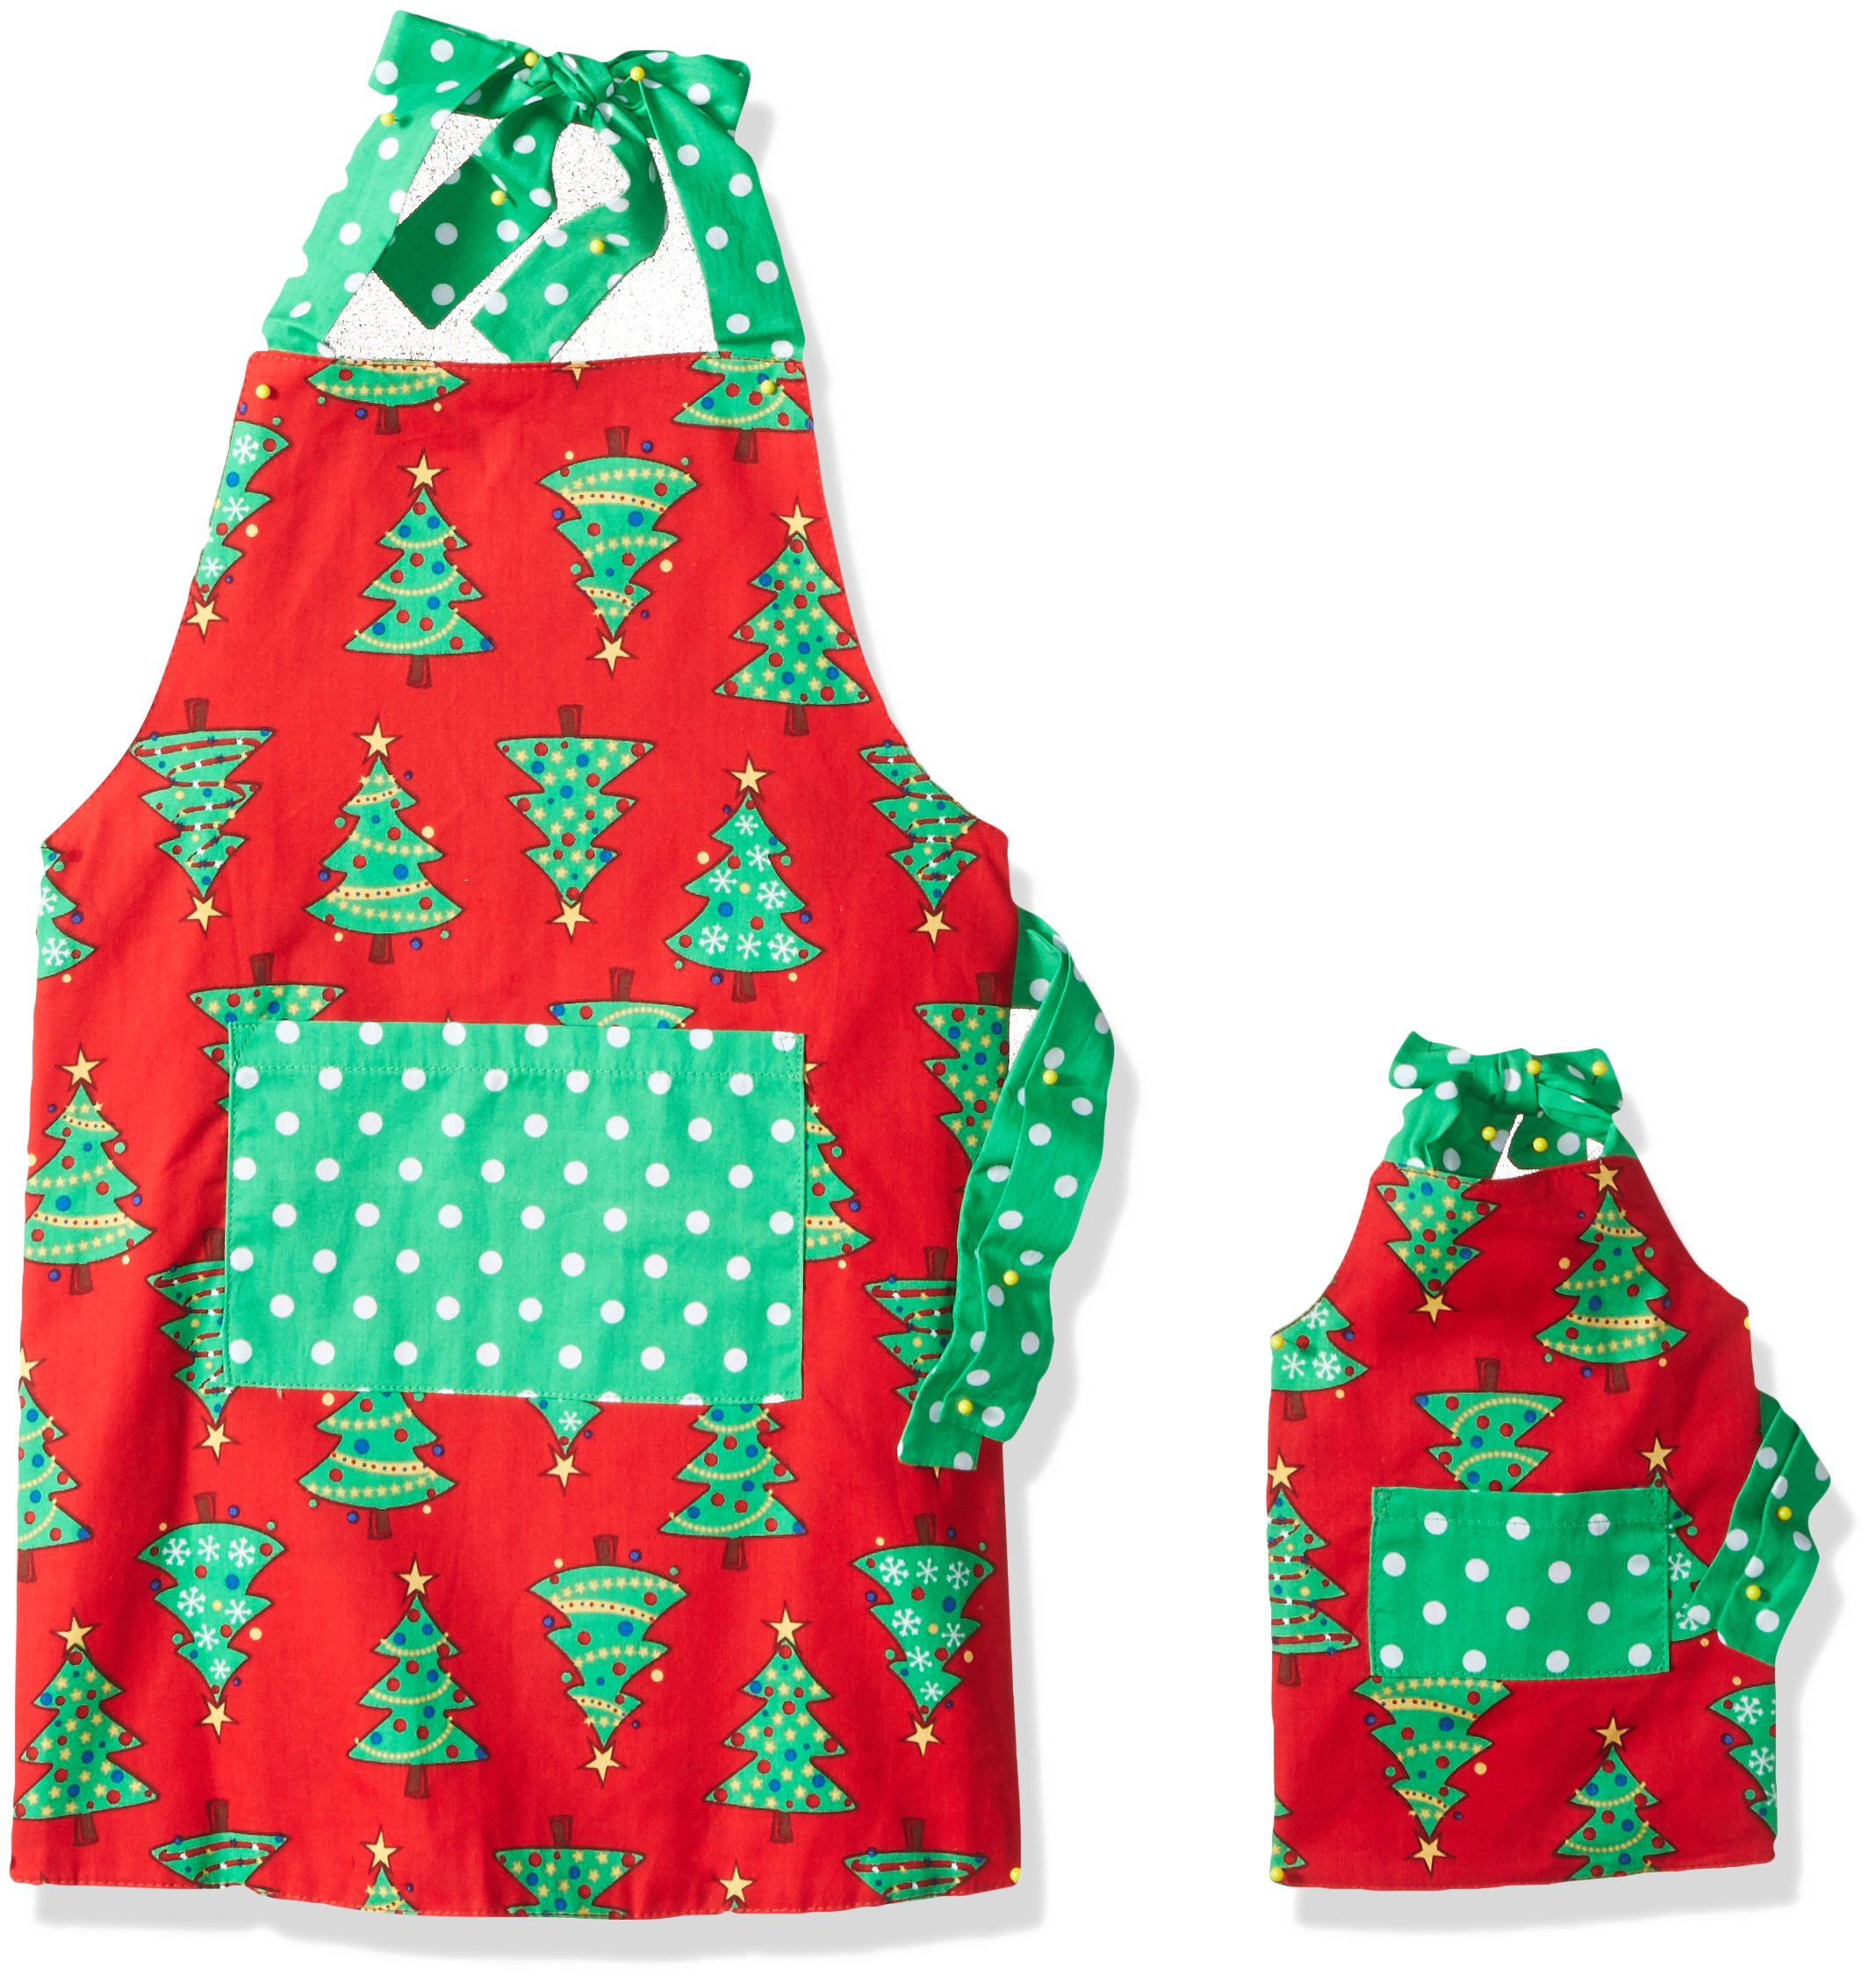 Dollie & Me Little Girls Dollie & Me Apron Set, Red/Multi, One Size